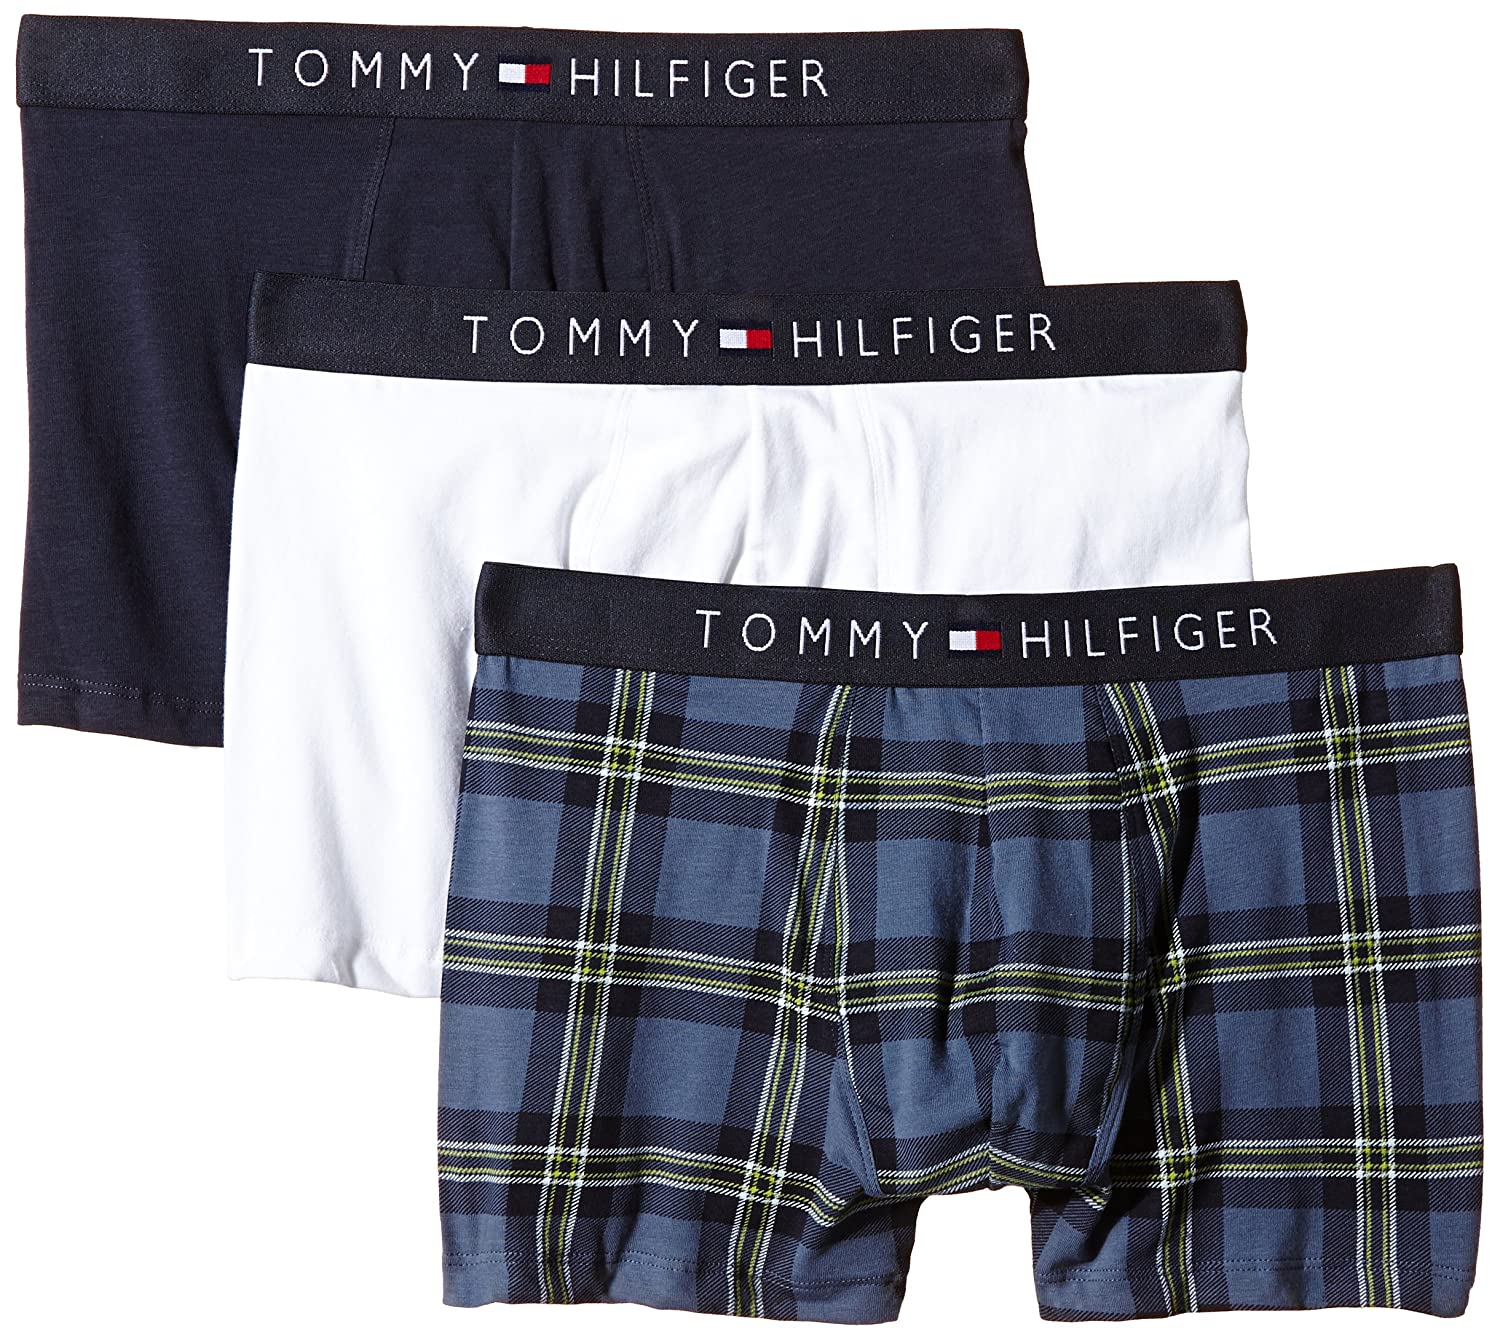 Tommy Hilfiger Flag Trunk Check 3 Pack, Bóxers para Hombre, Parisian Night-PT/Multi, XL: Amazon.es: Ropa y accesorios